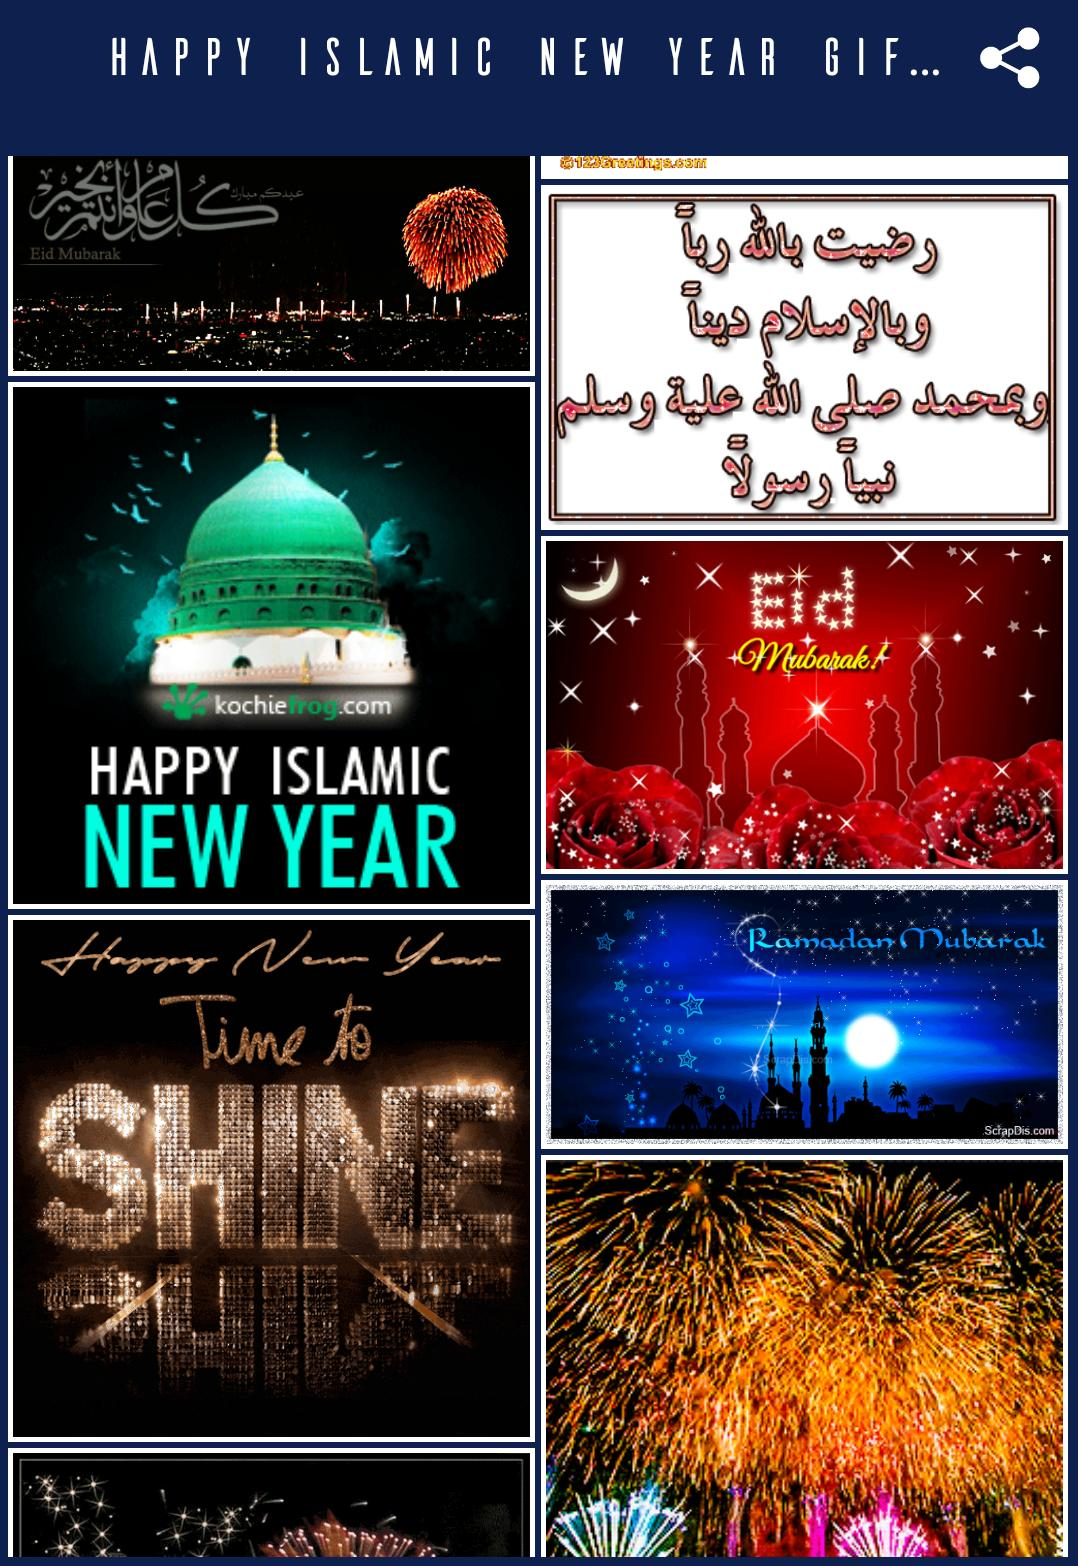 Happy Islamic New Year Gif Images For Android Apk Download